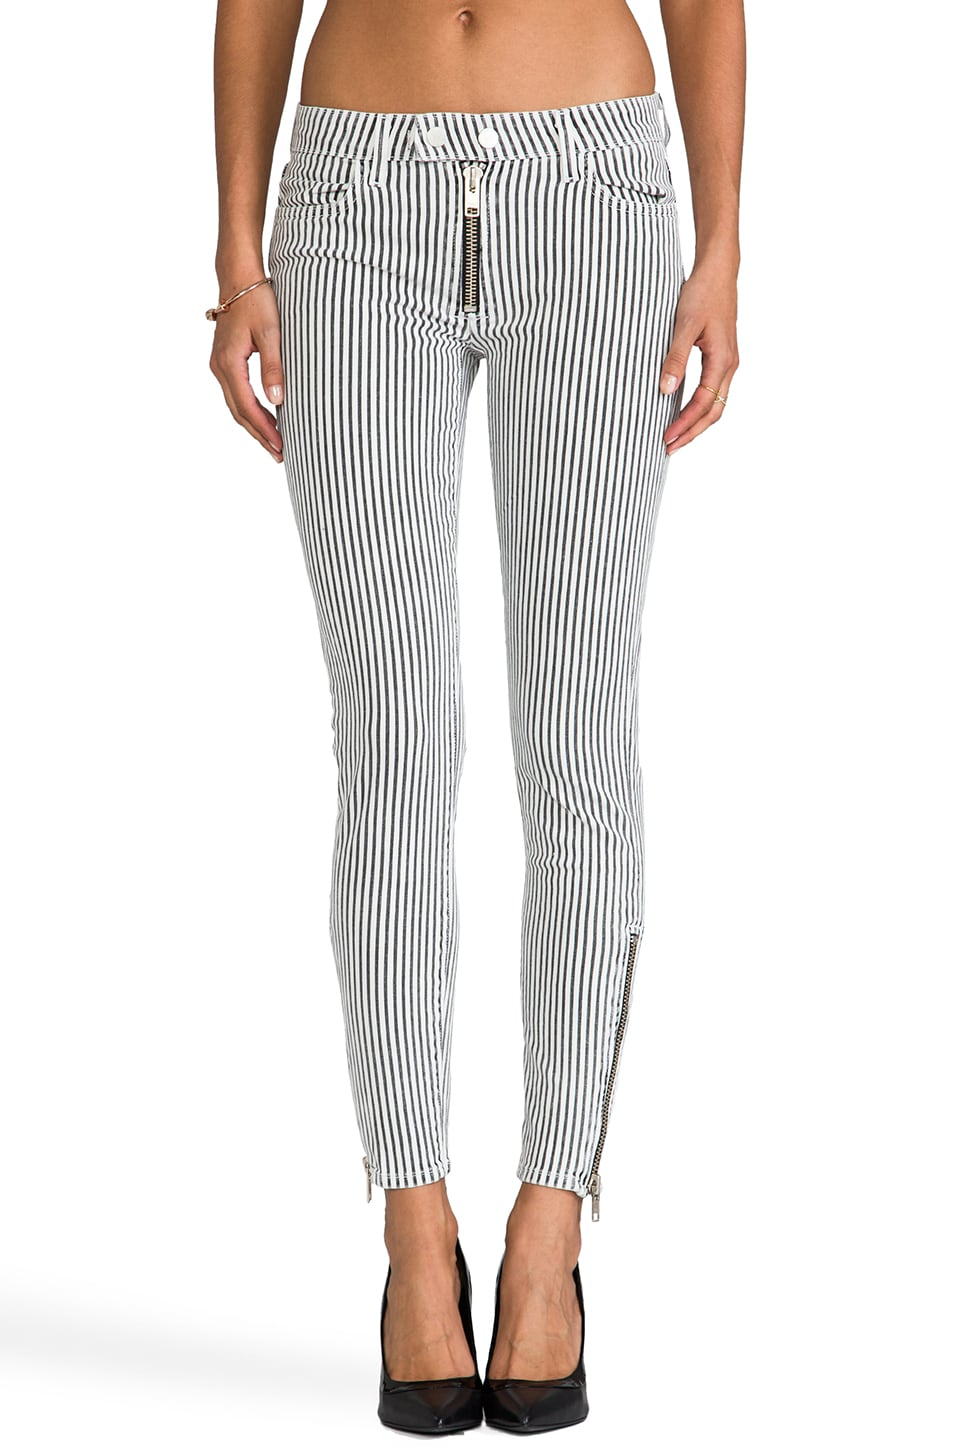 TEXTILE Elizabeth and James Cooper Pants in Black and White Stripe